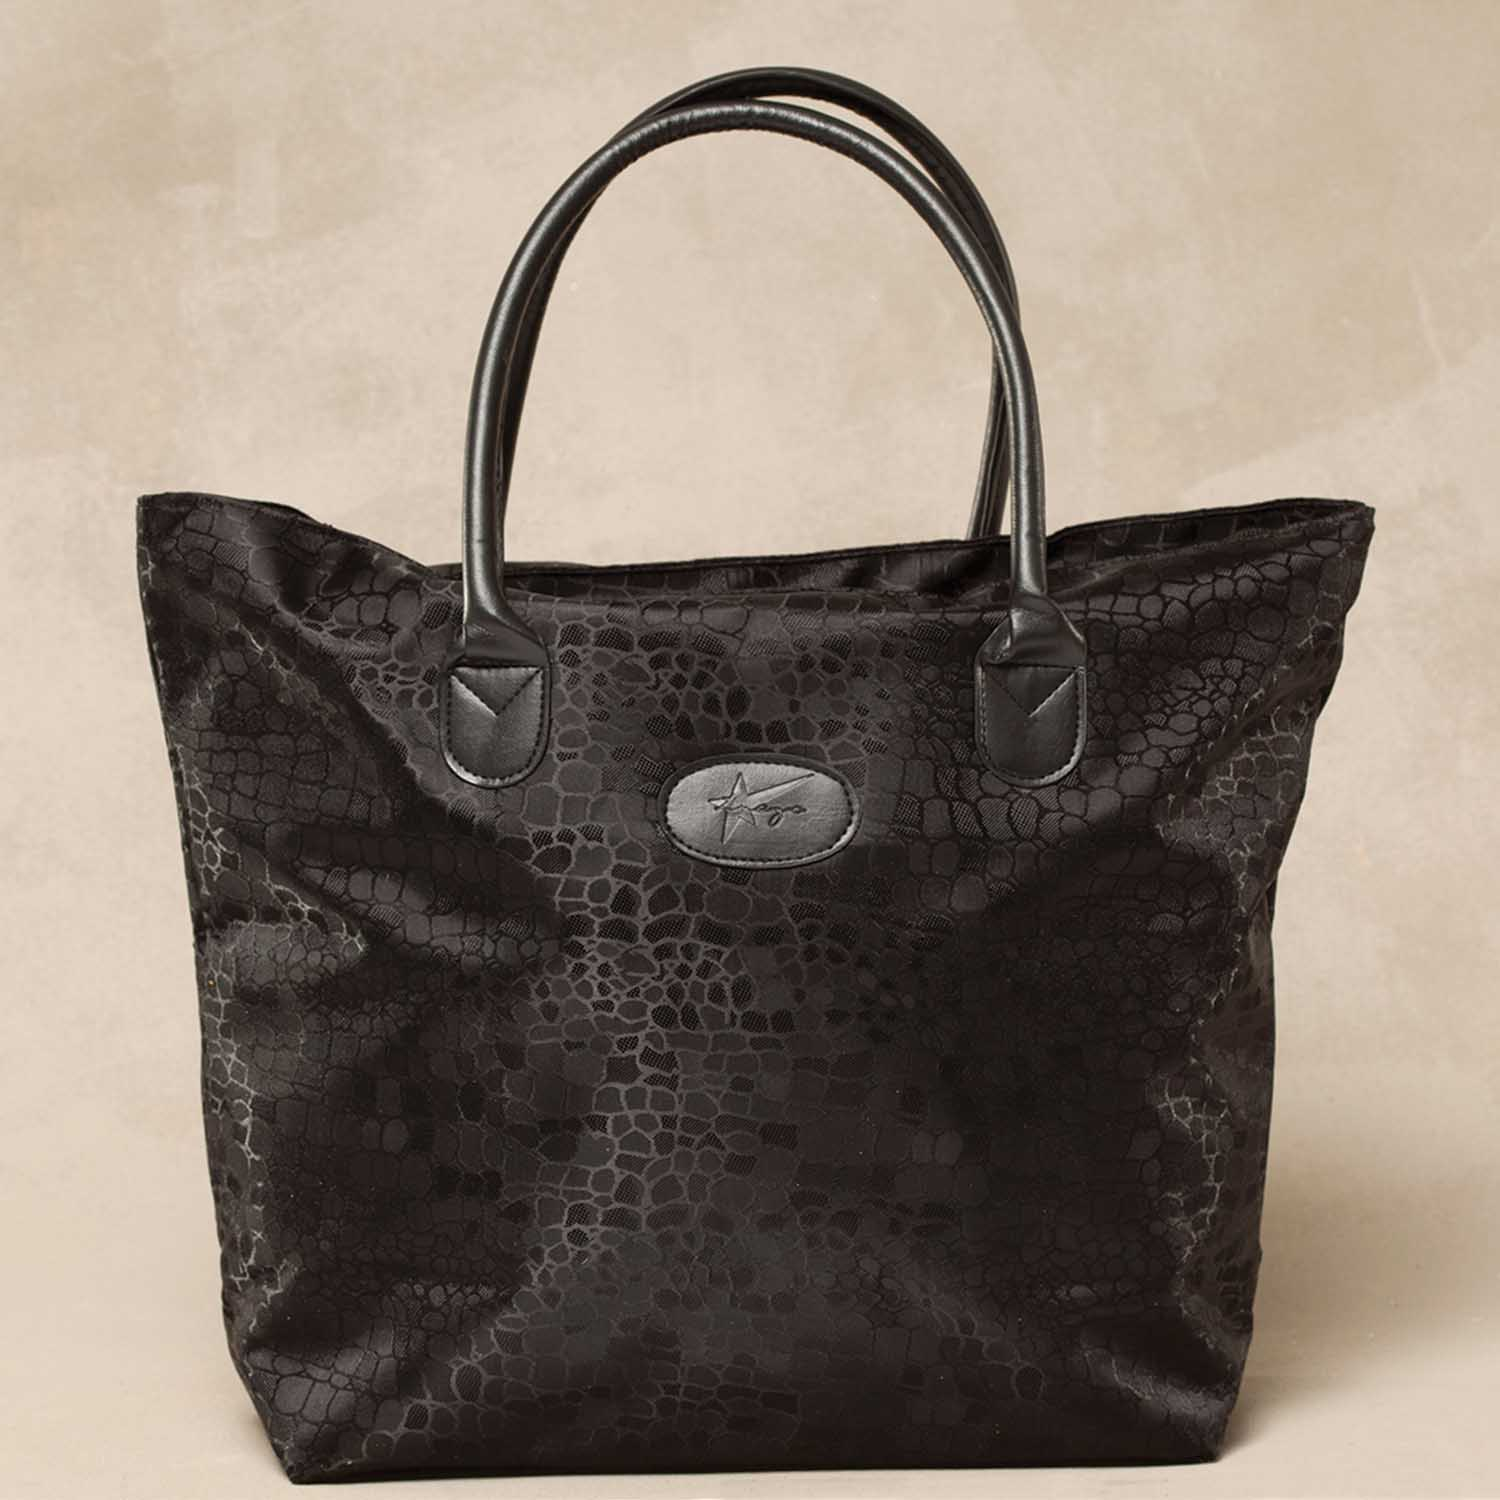 BLACK COBBLESTONE TRAVEL SIGNATURE TOTE WITH LOGO